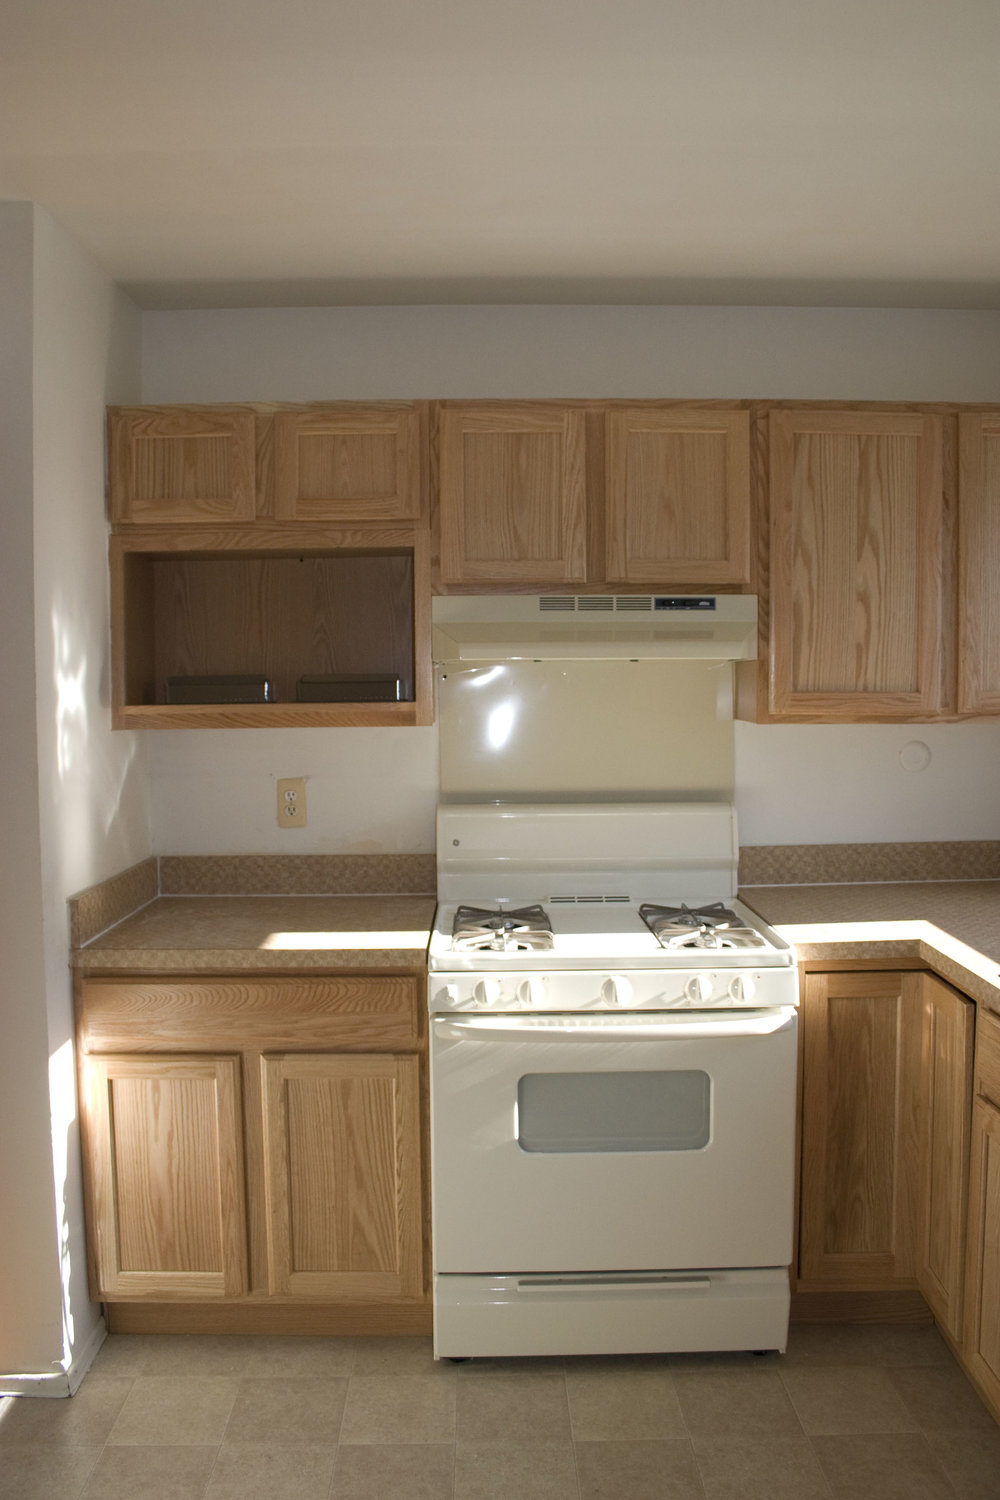 2-bedroom kitchen, #1